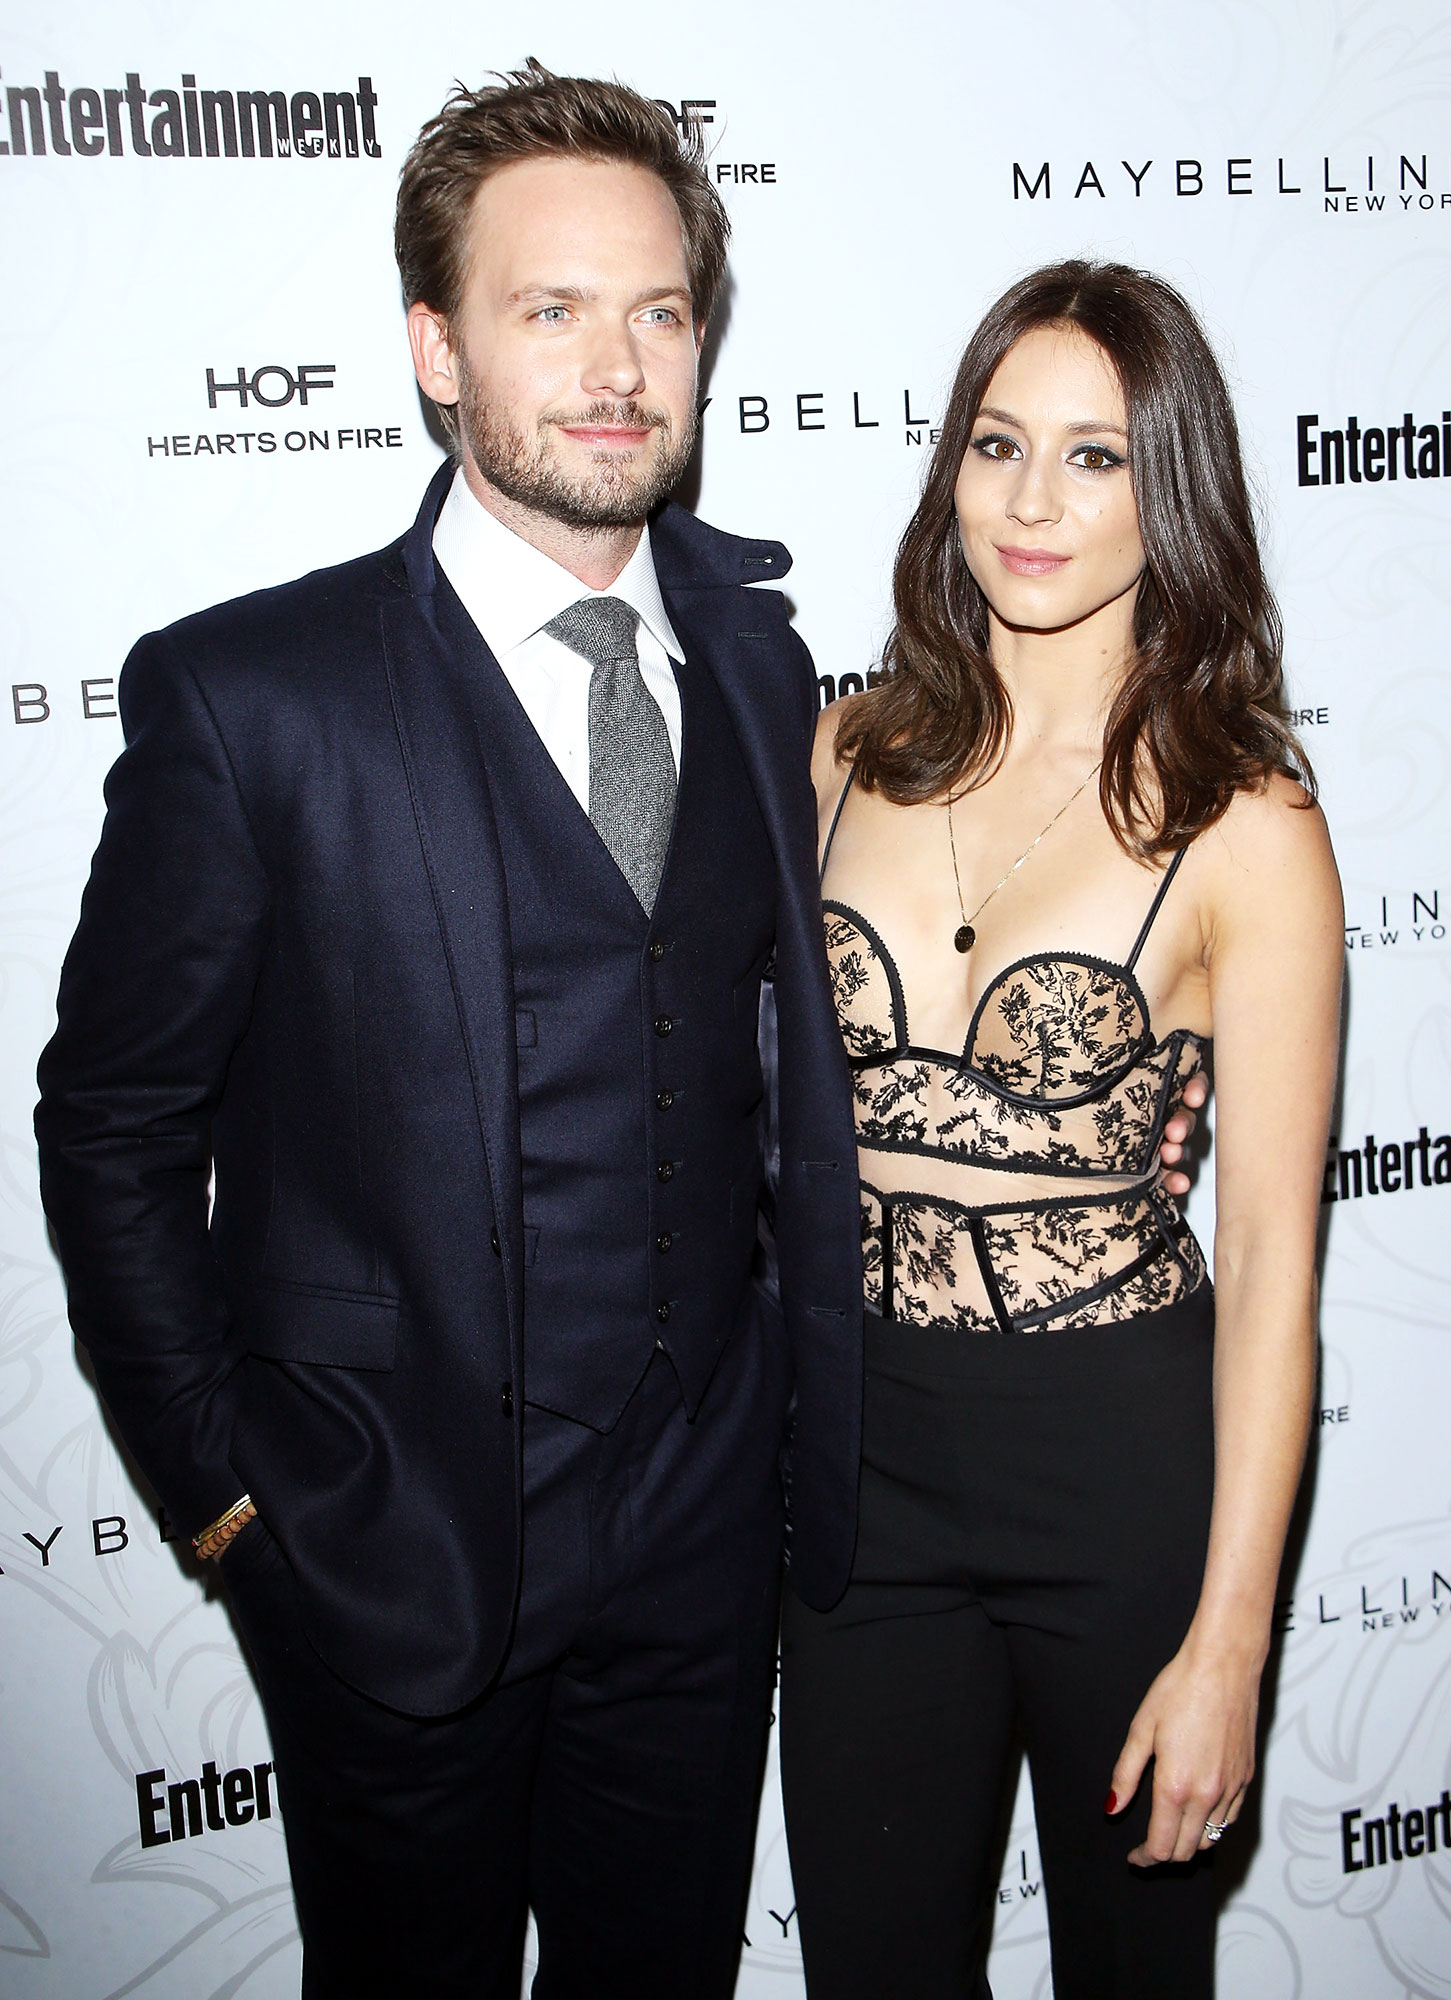 Pretty Little Liars Star Troian Bellisario Gives Birth to Her First Child with Suits Star Patrick J. Adams